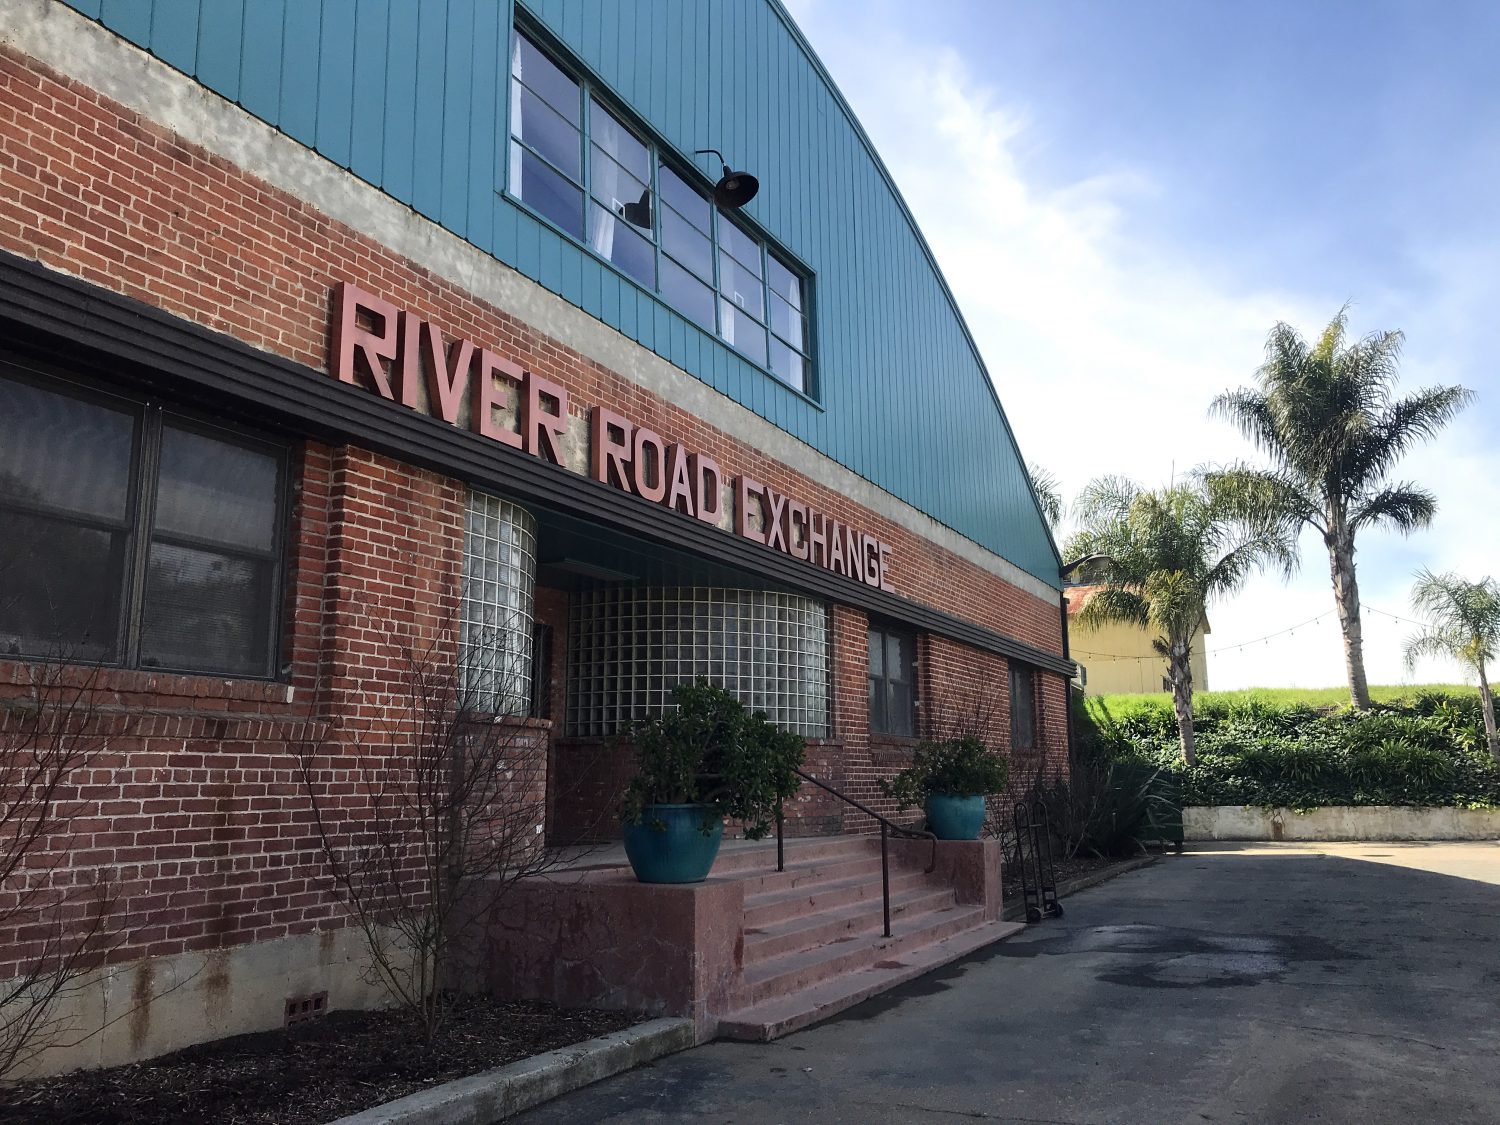 Hood, CA, River Road Exchange building, Sacramento river, multi use building, building rental, event planning, Willow Ballroom, booking building, historic warehouses,